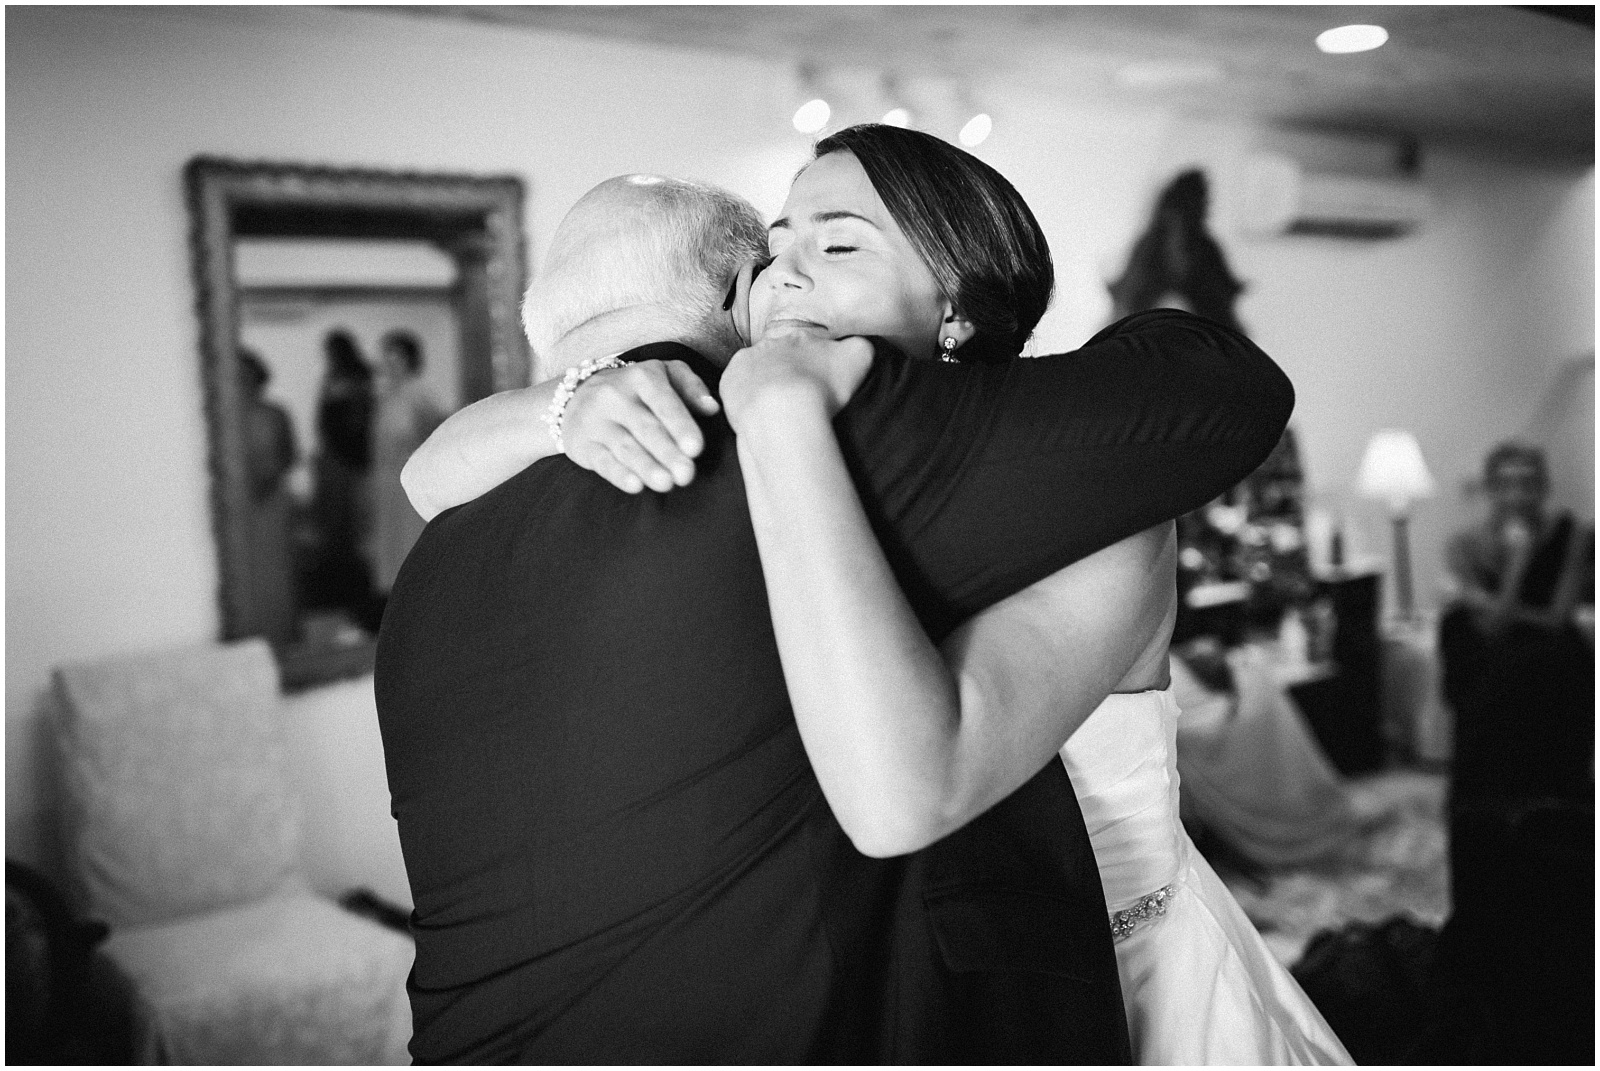 Candid father and daughter hug